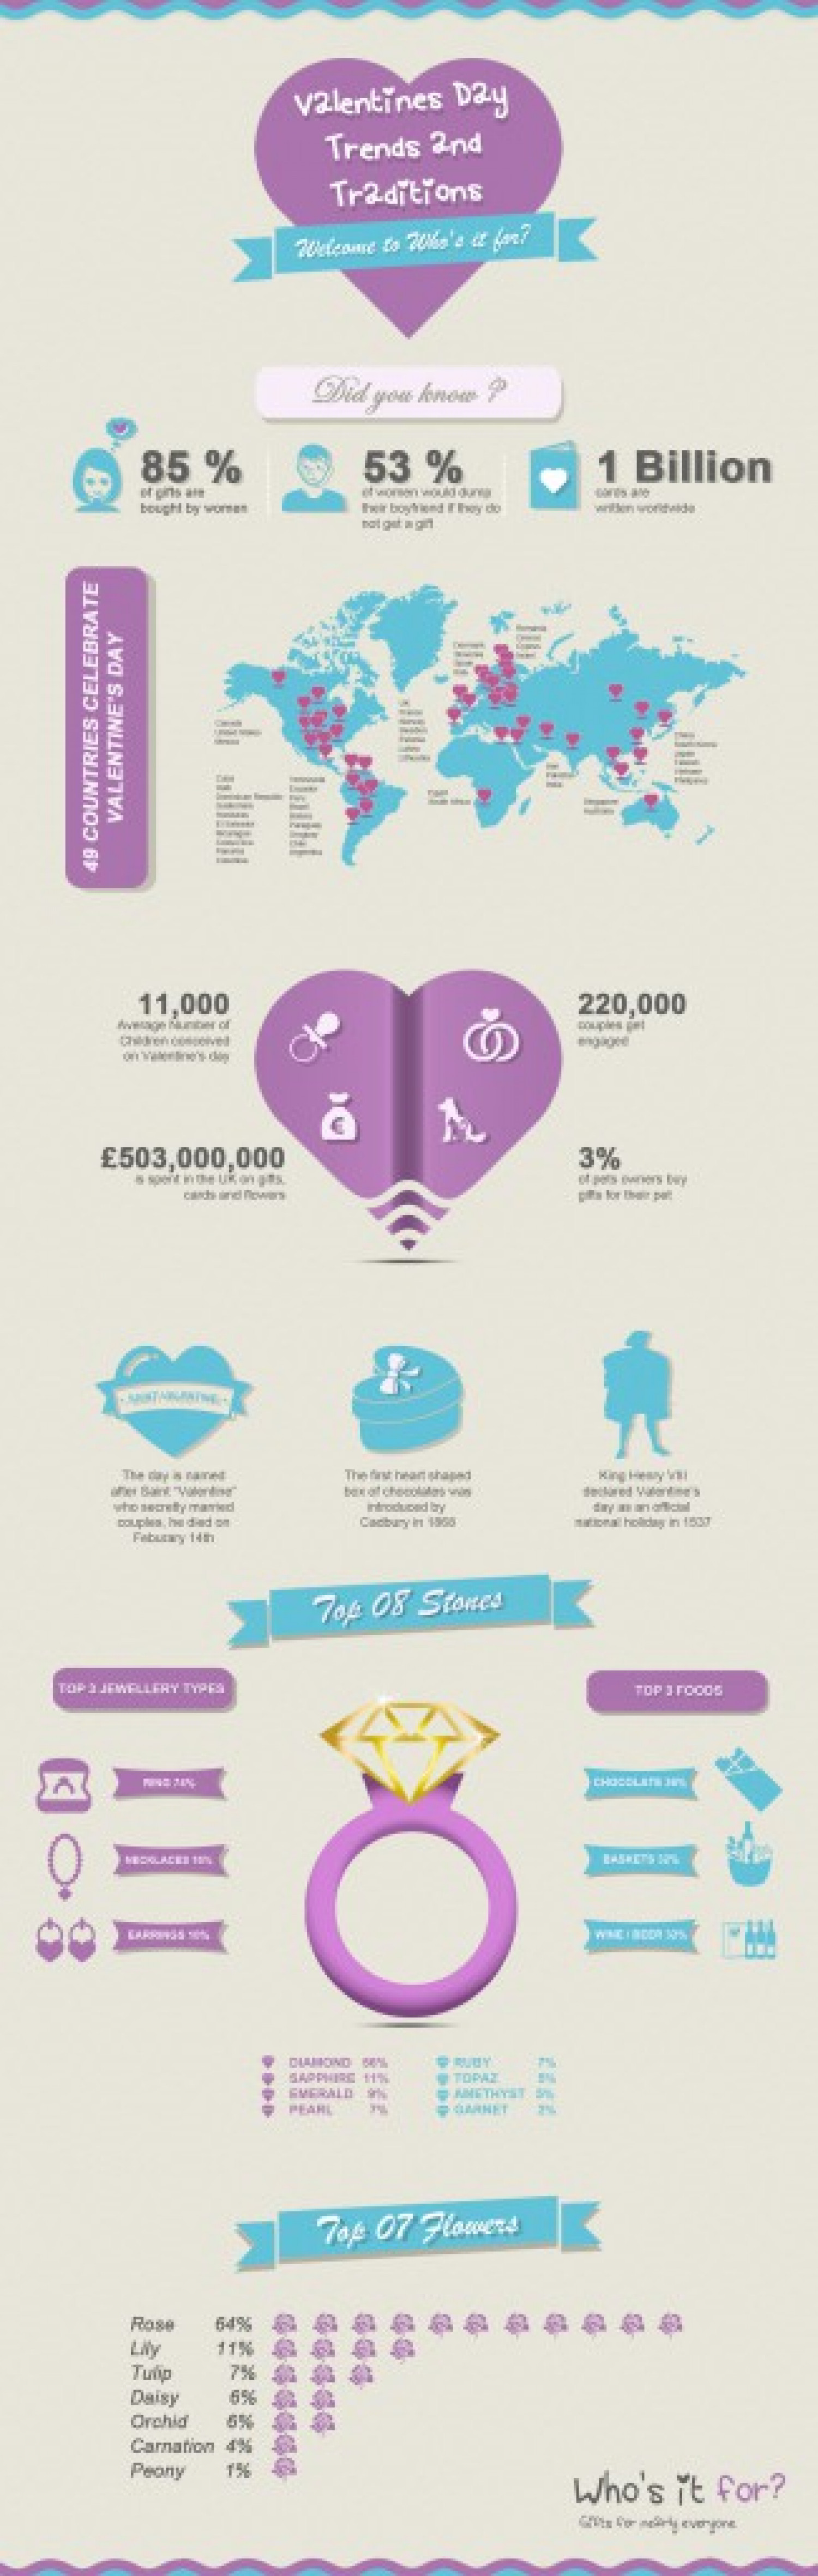 Valentine's Day Trends and Traditions Infographic